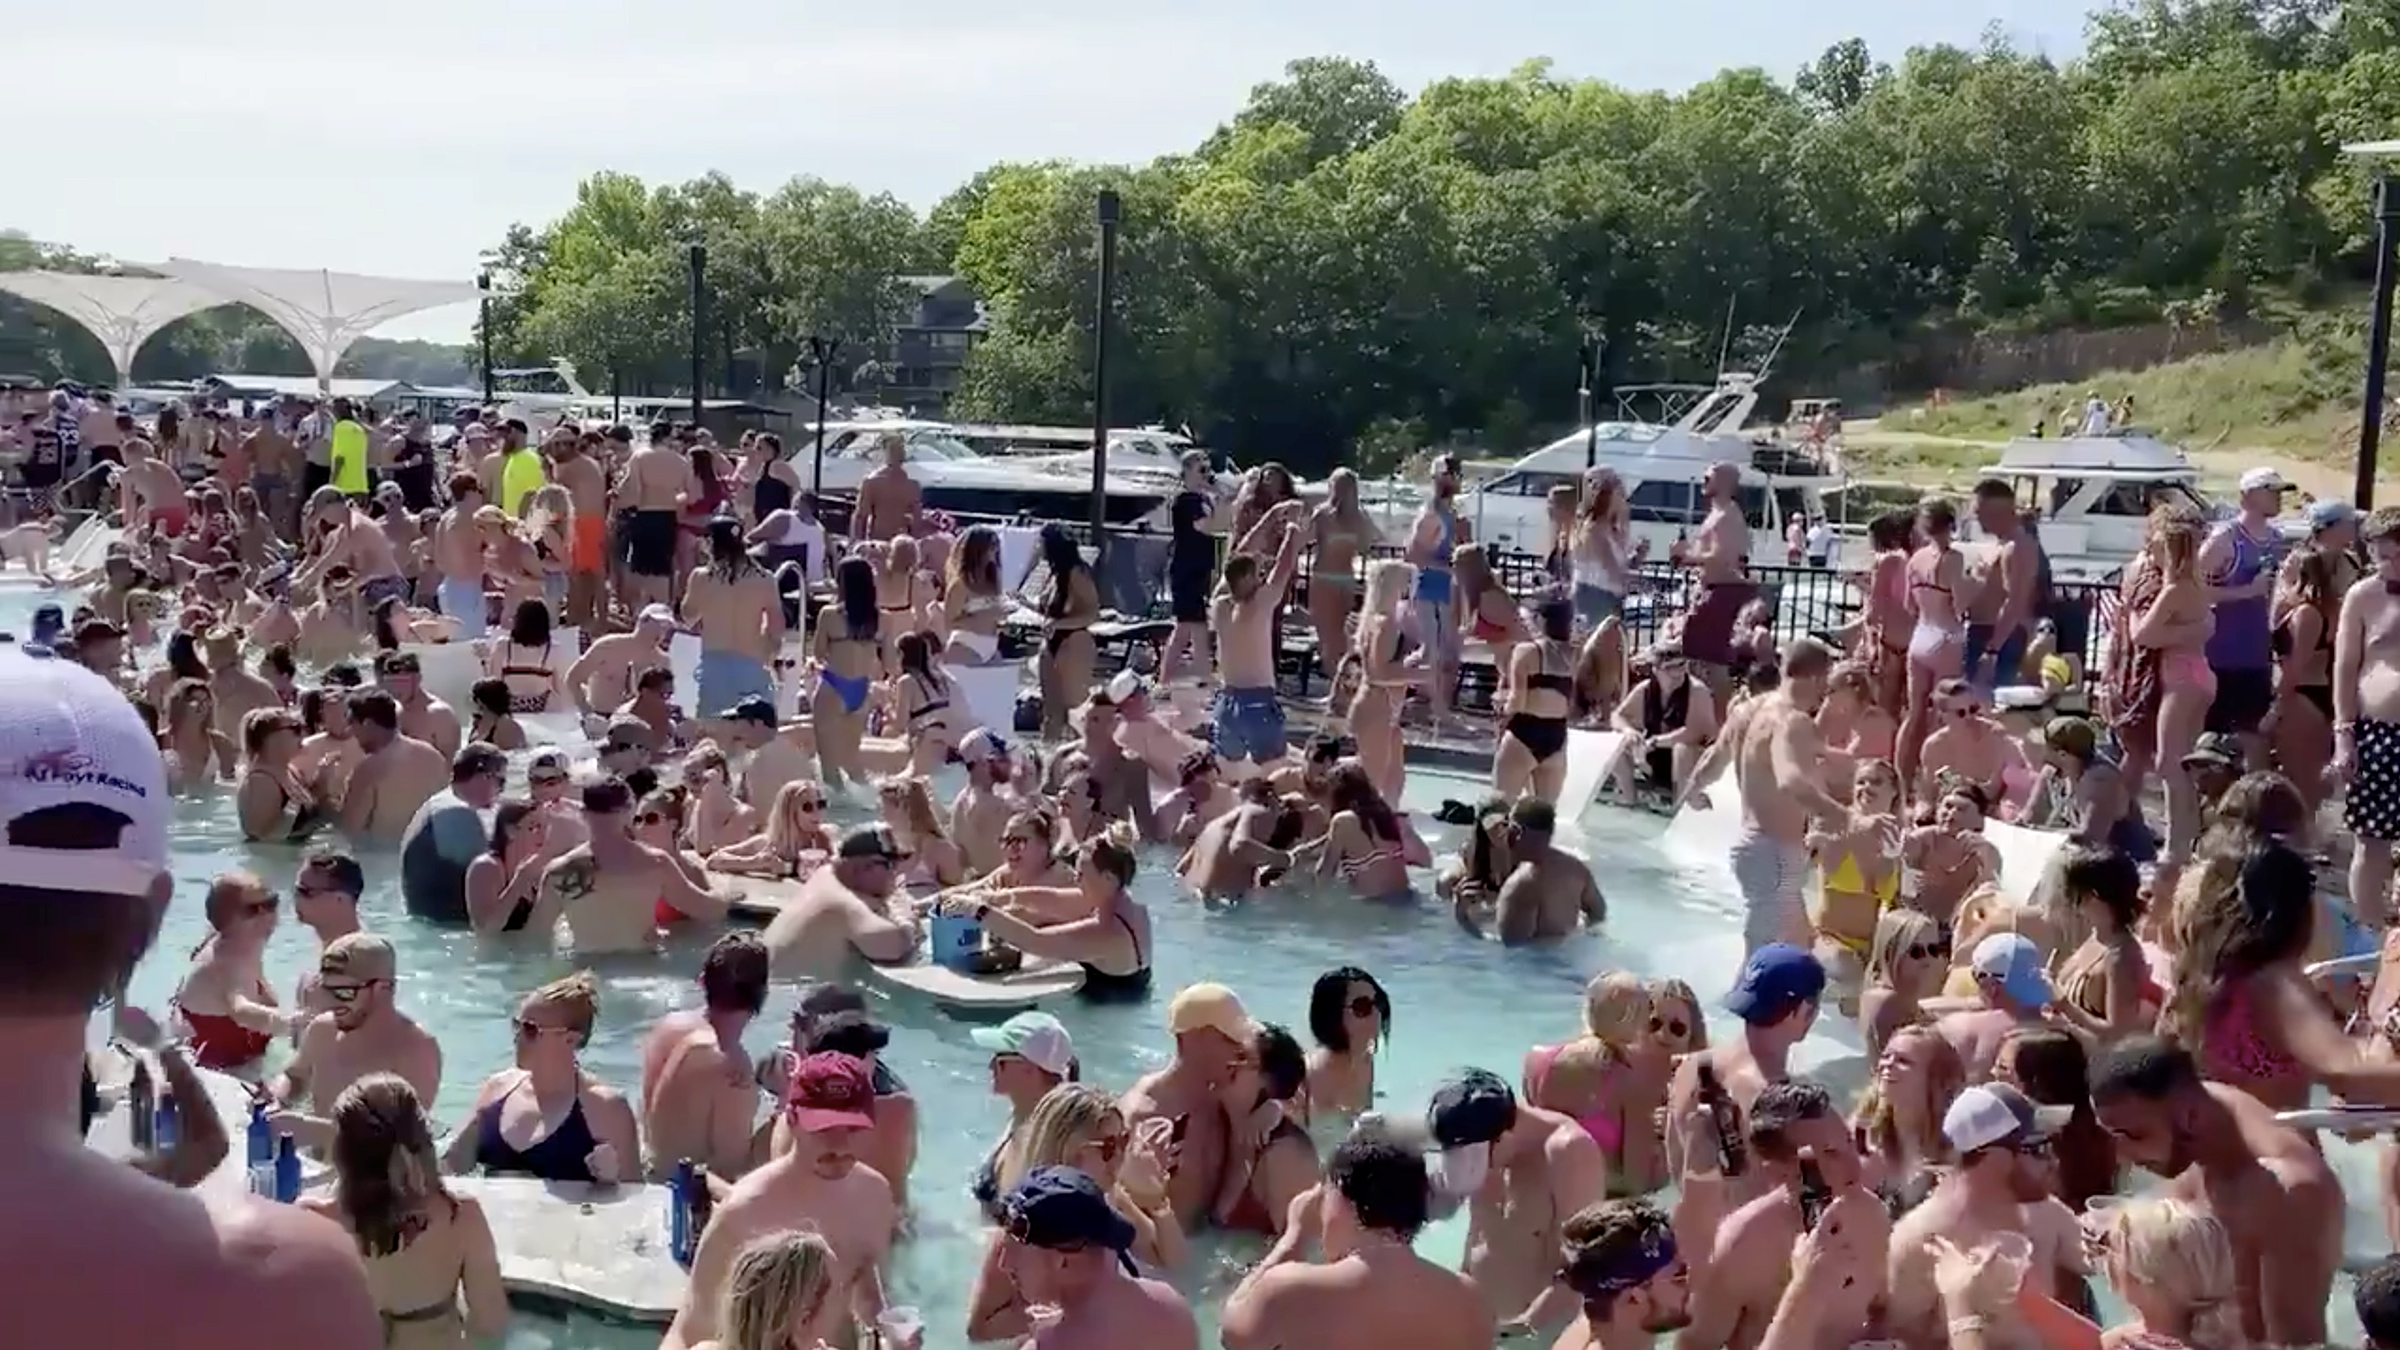 Revelers celebrate Memorial Day weekend at Osage Beach of the Lake of the Ozarks, Missouri, U.S., May 23 in this screen grab taken from social media video